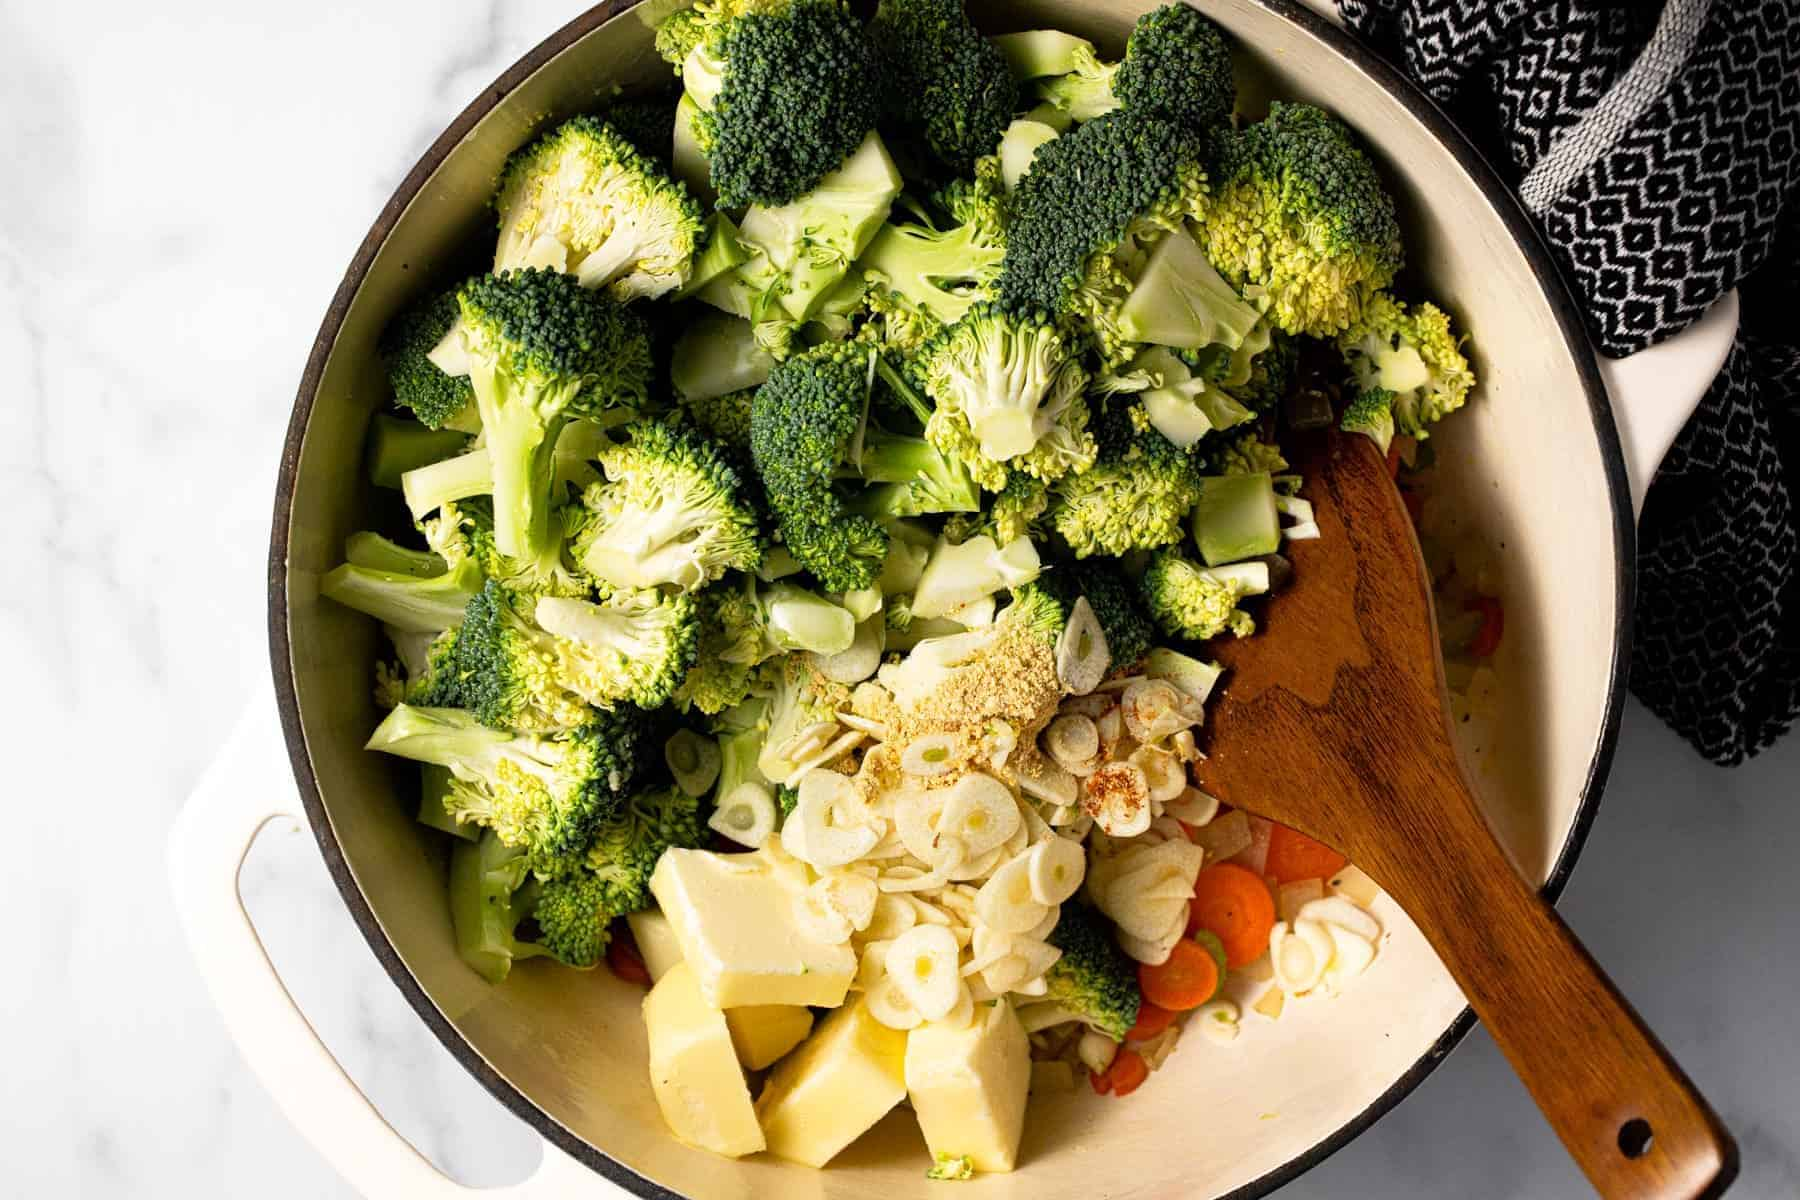 Large pot filled with ingredients to make homemade broccoli cheddar soup